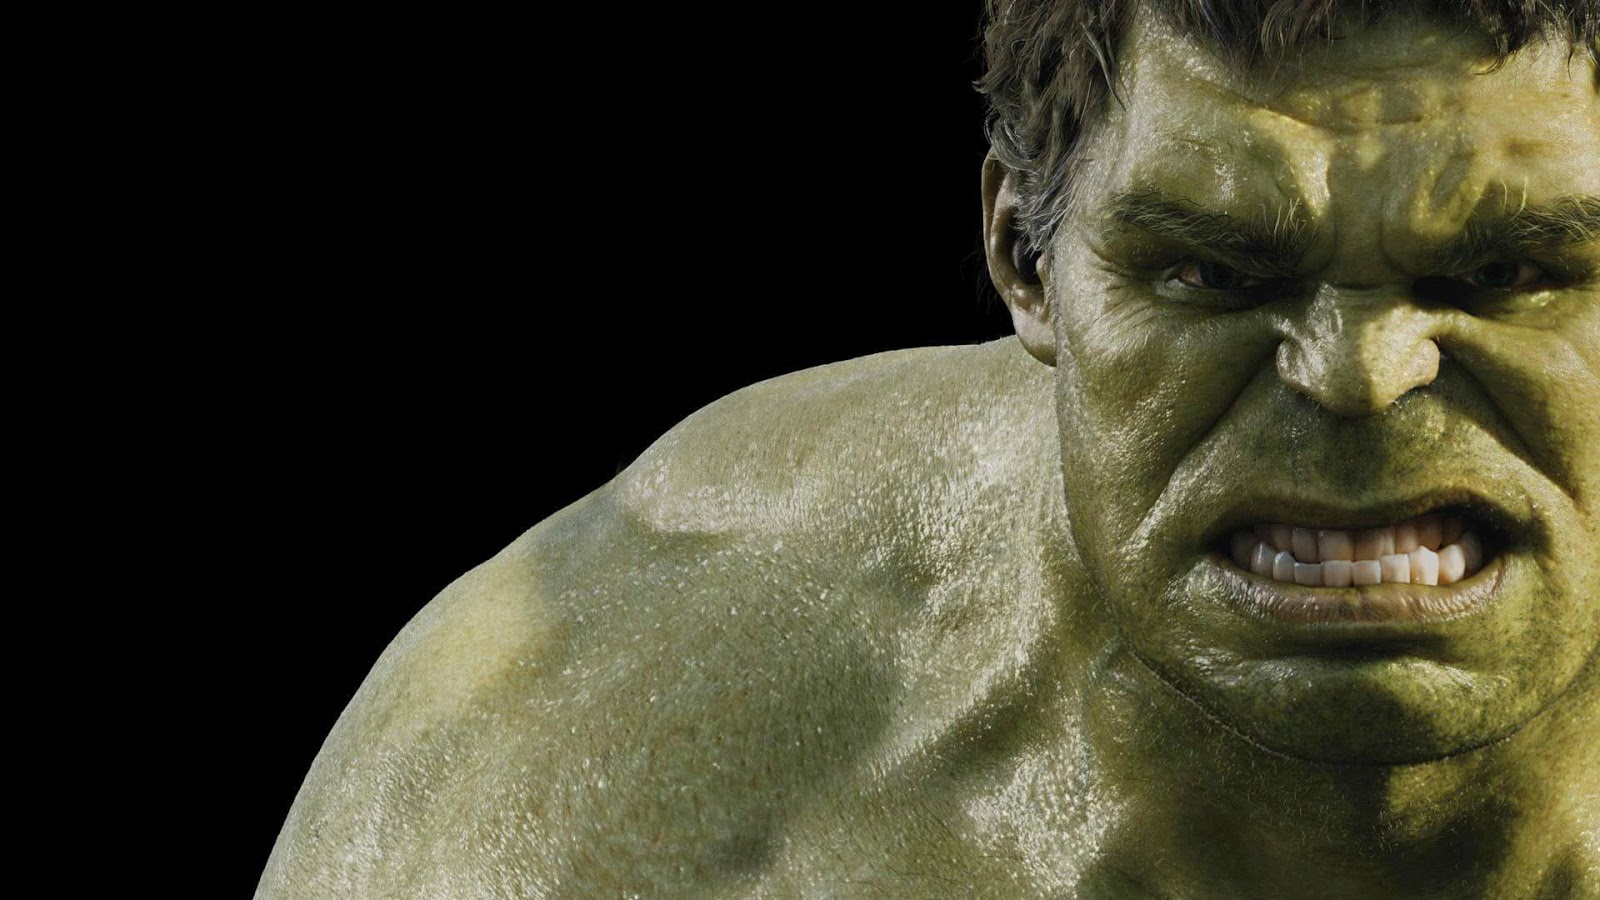 hulk wallpaper download in 4k high resolution - free new wallpapers